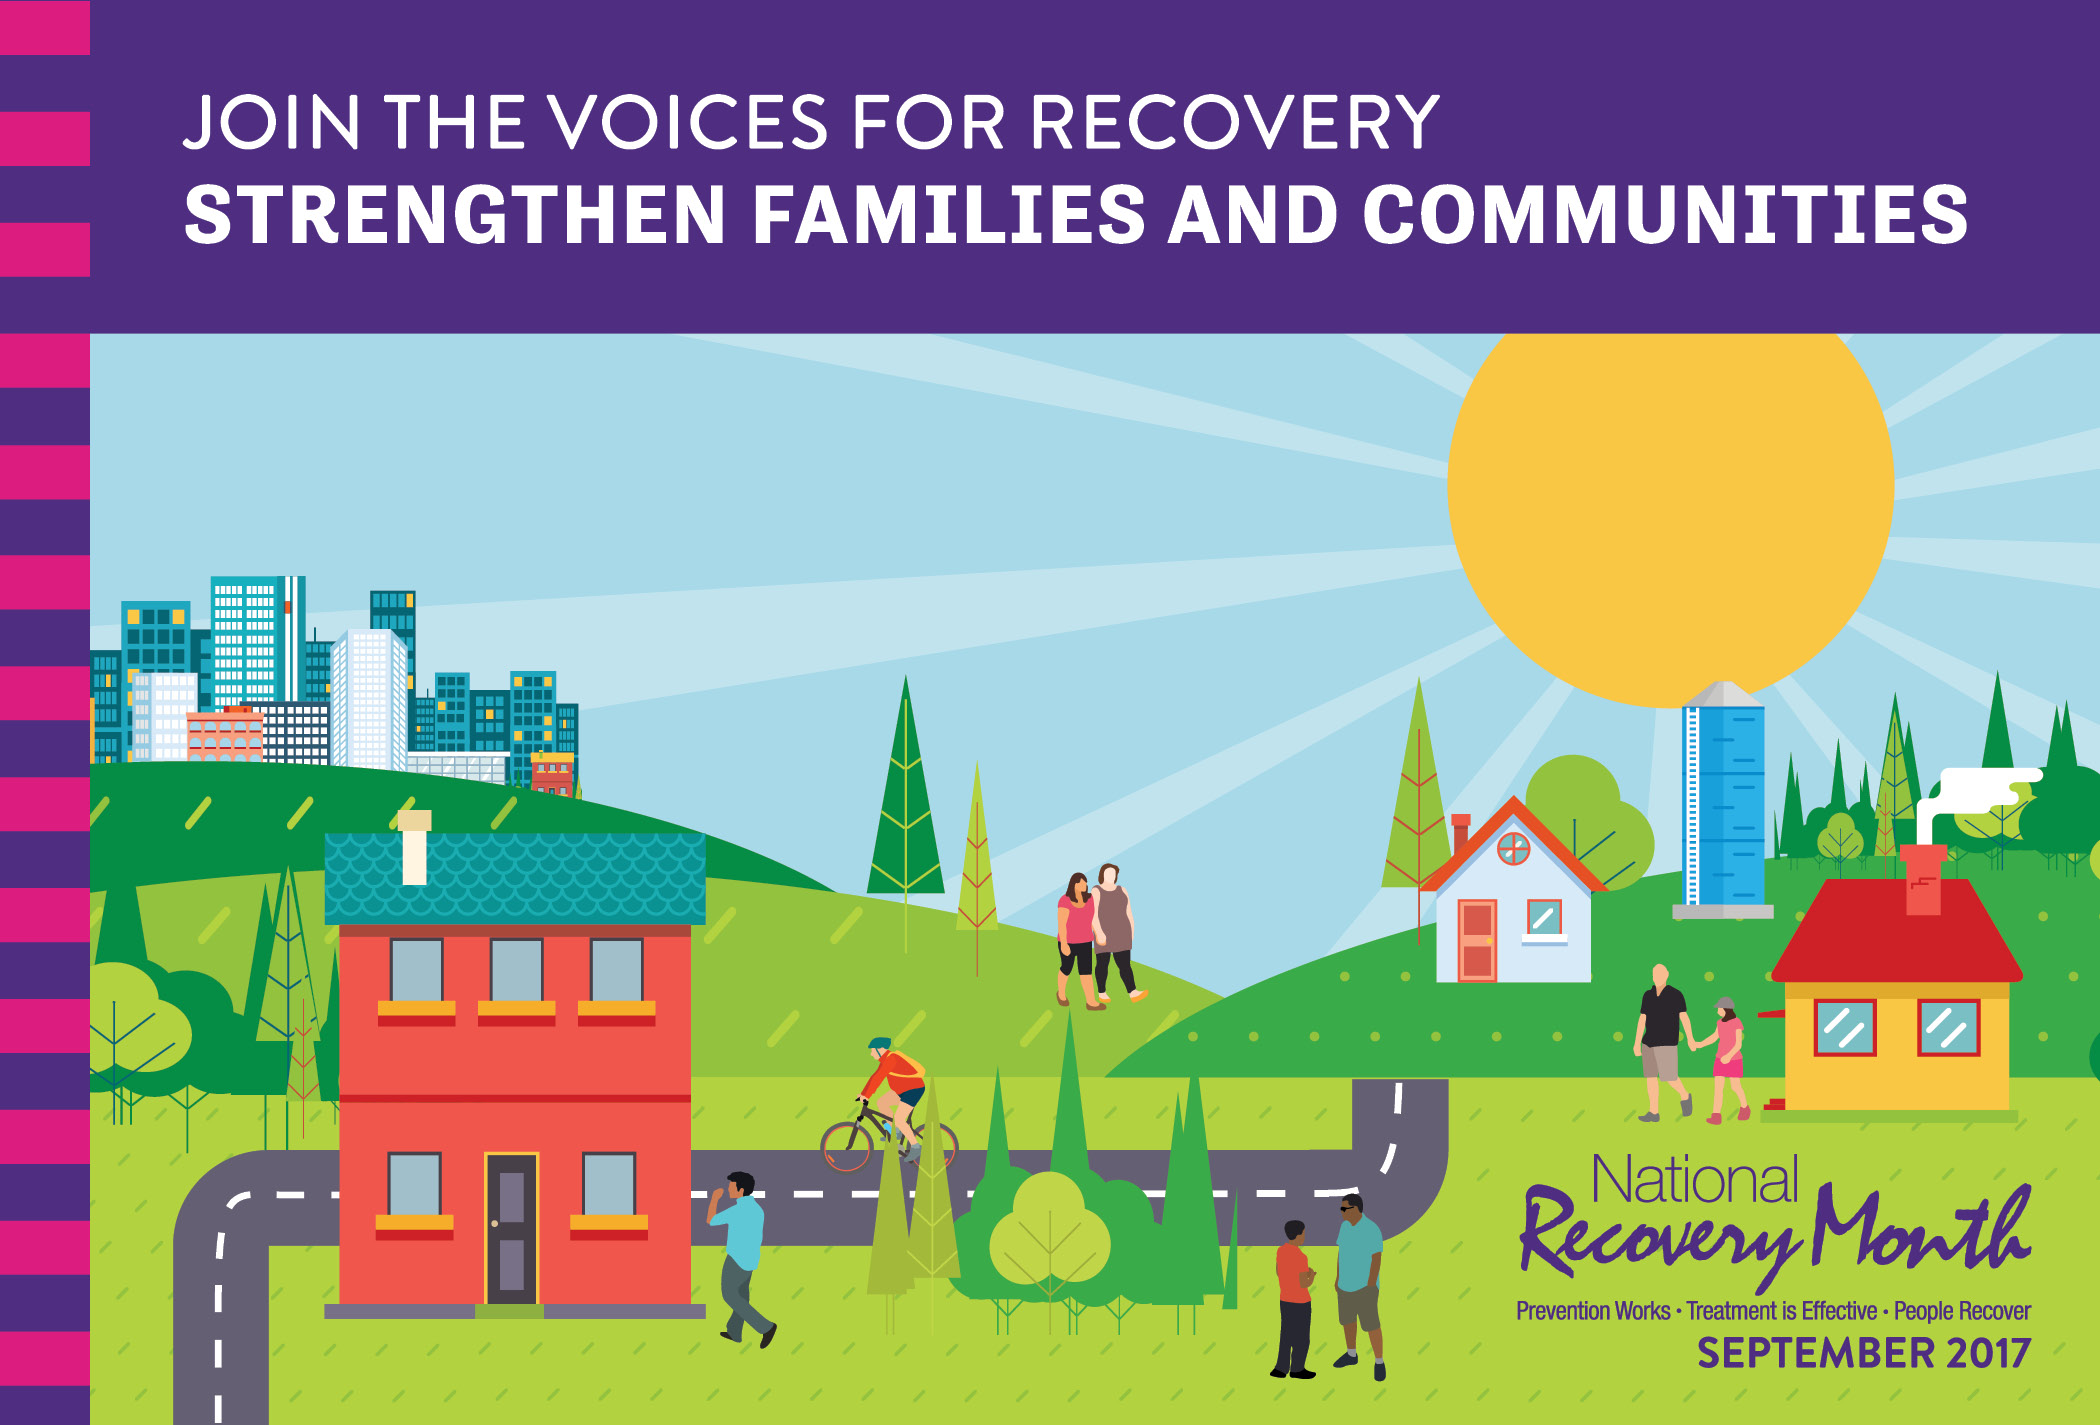 September is National Recovery Month